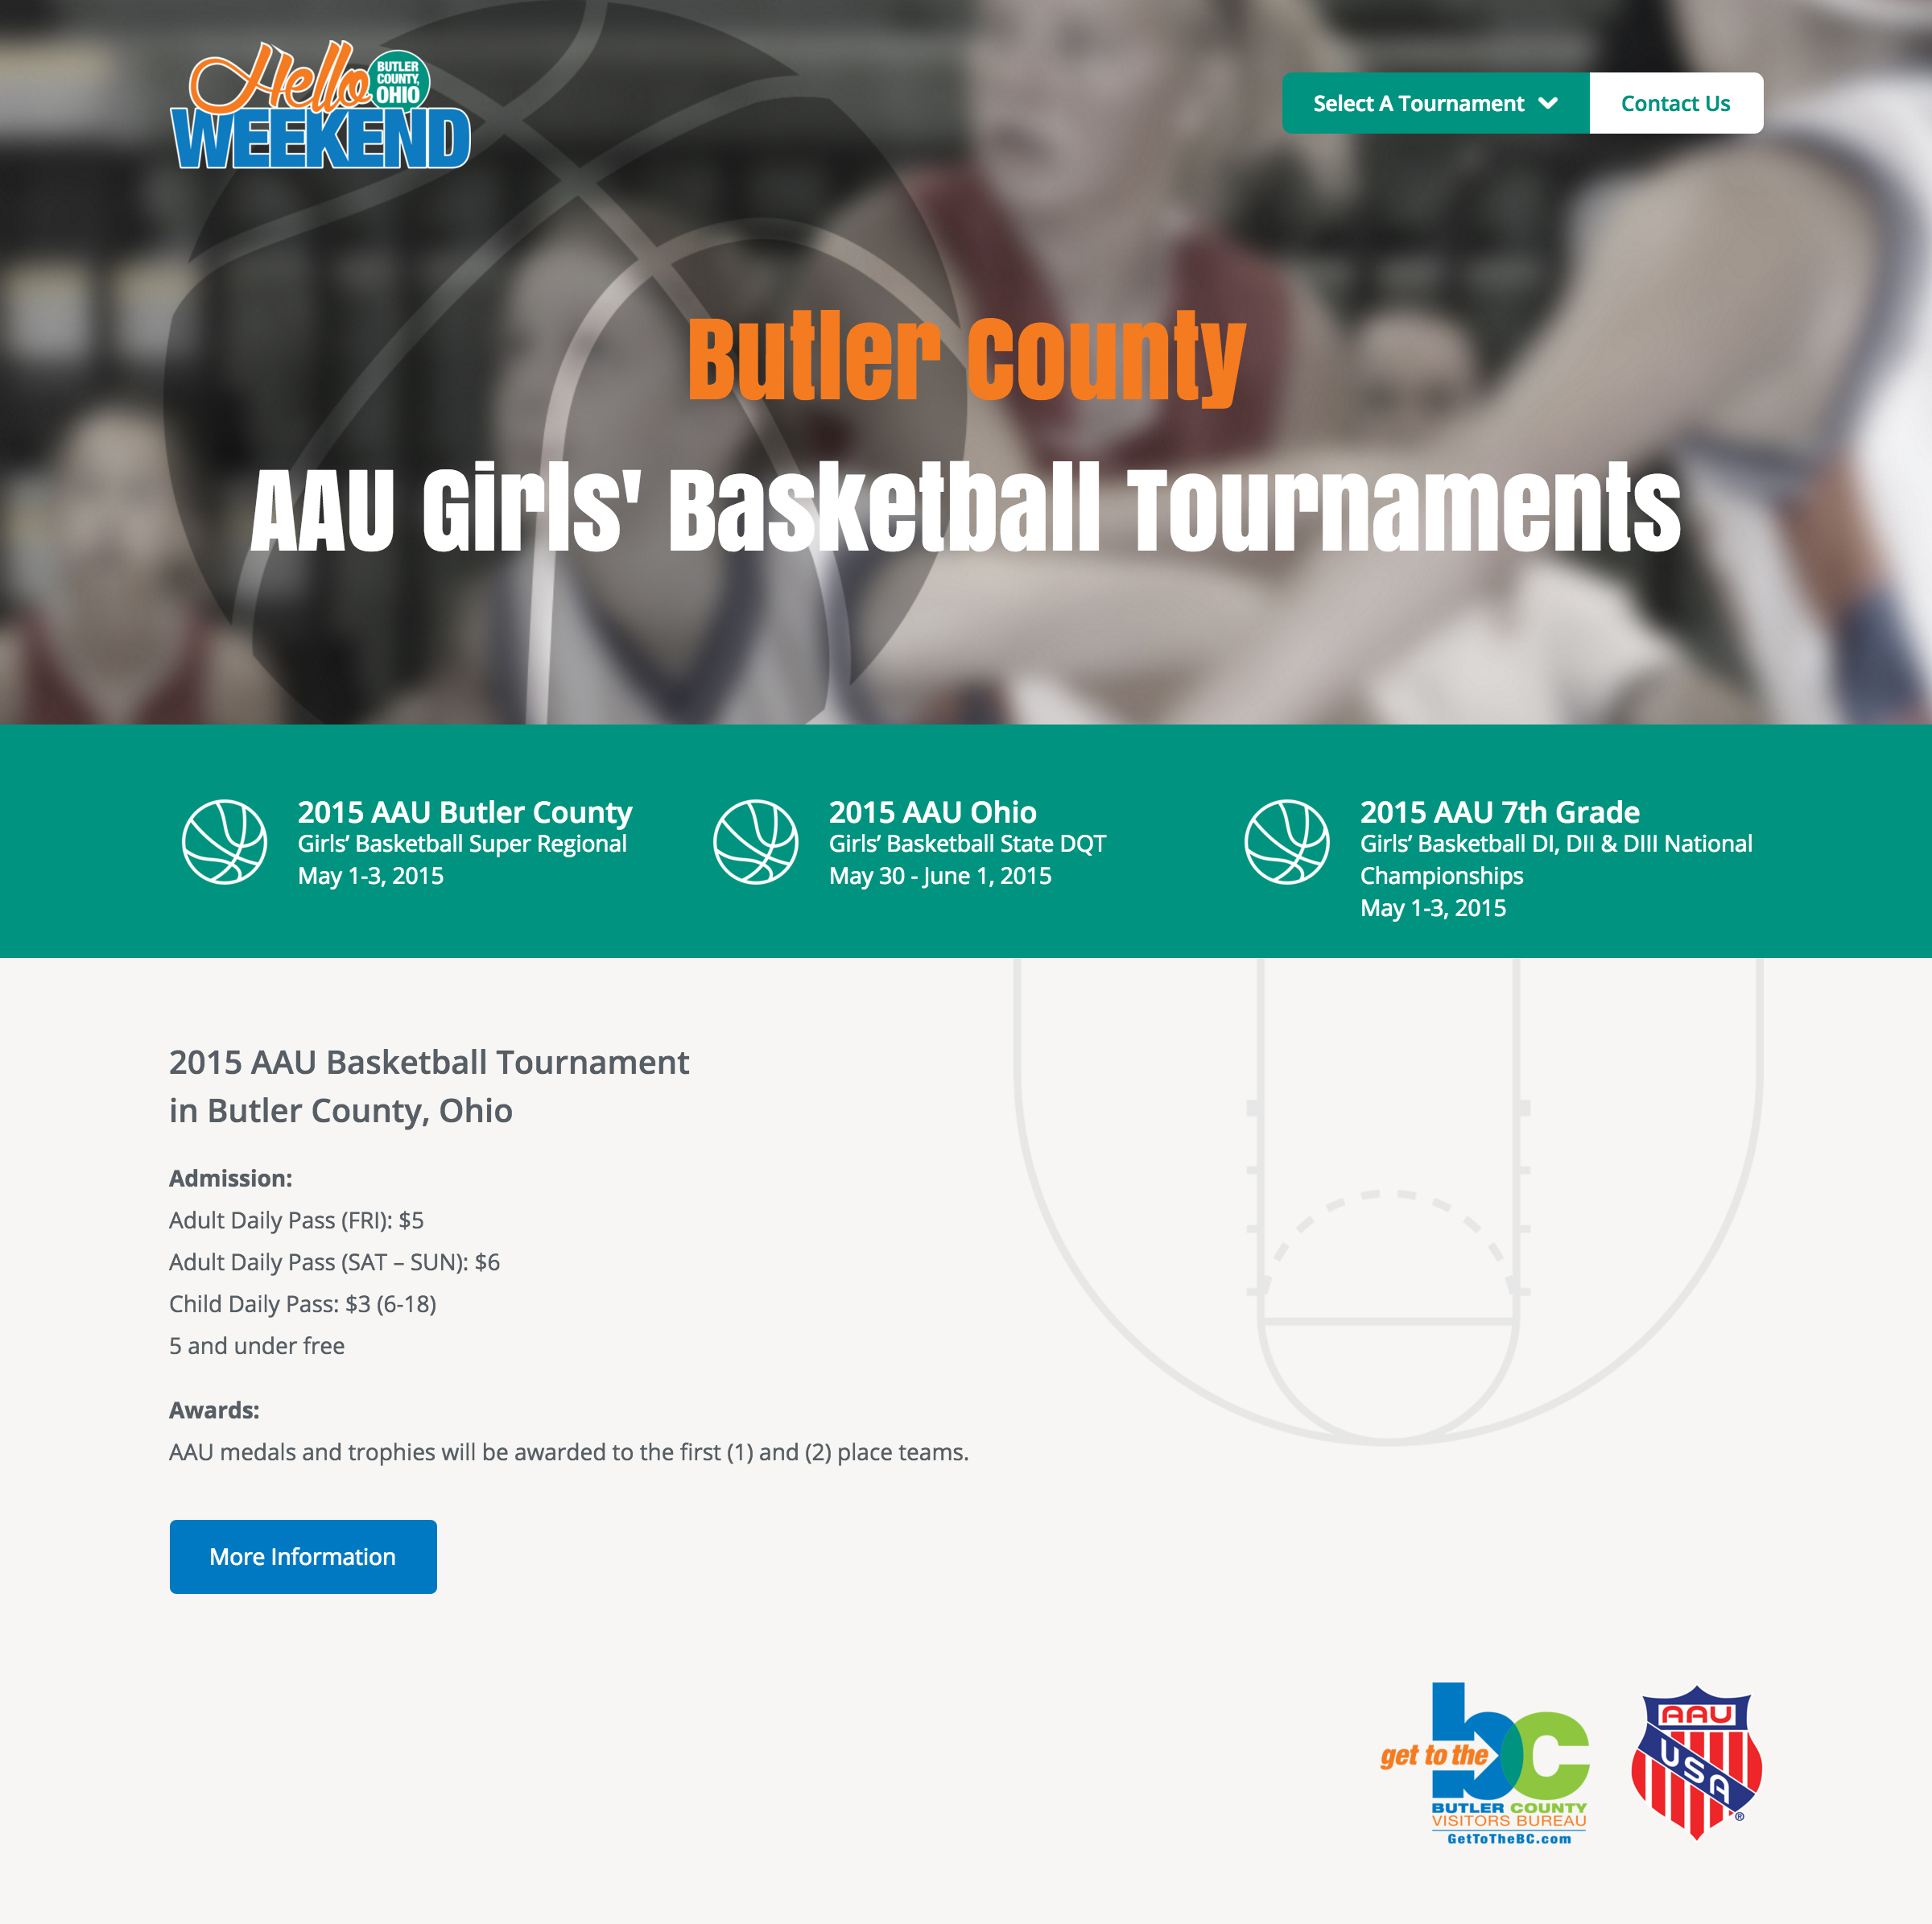 AAU in Butler County 2015